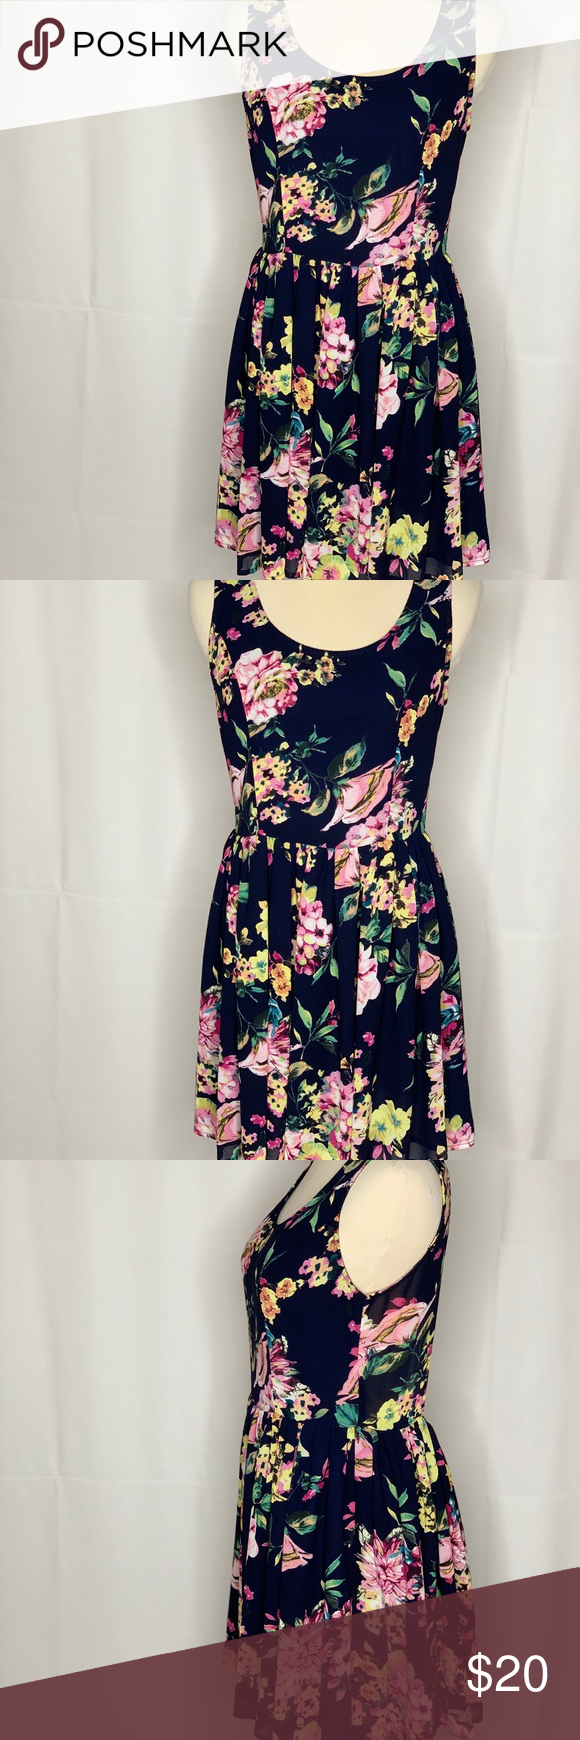 6b85be84bb6 Entro floral dress Entro Multicolor Floral Sleeveless Open Back Summer Dress  Womens Size Small entro Dresses Mini